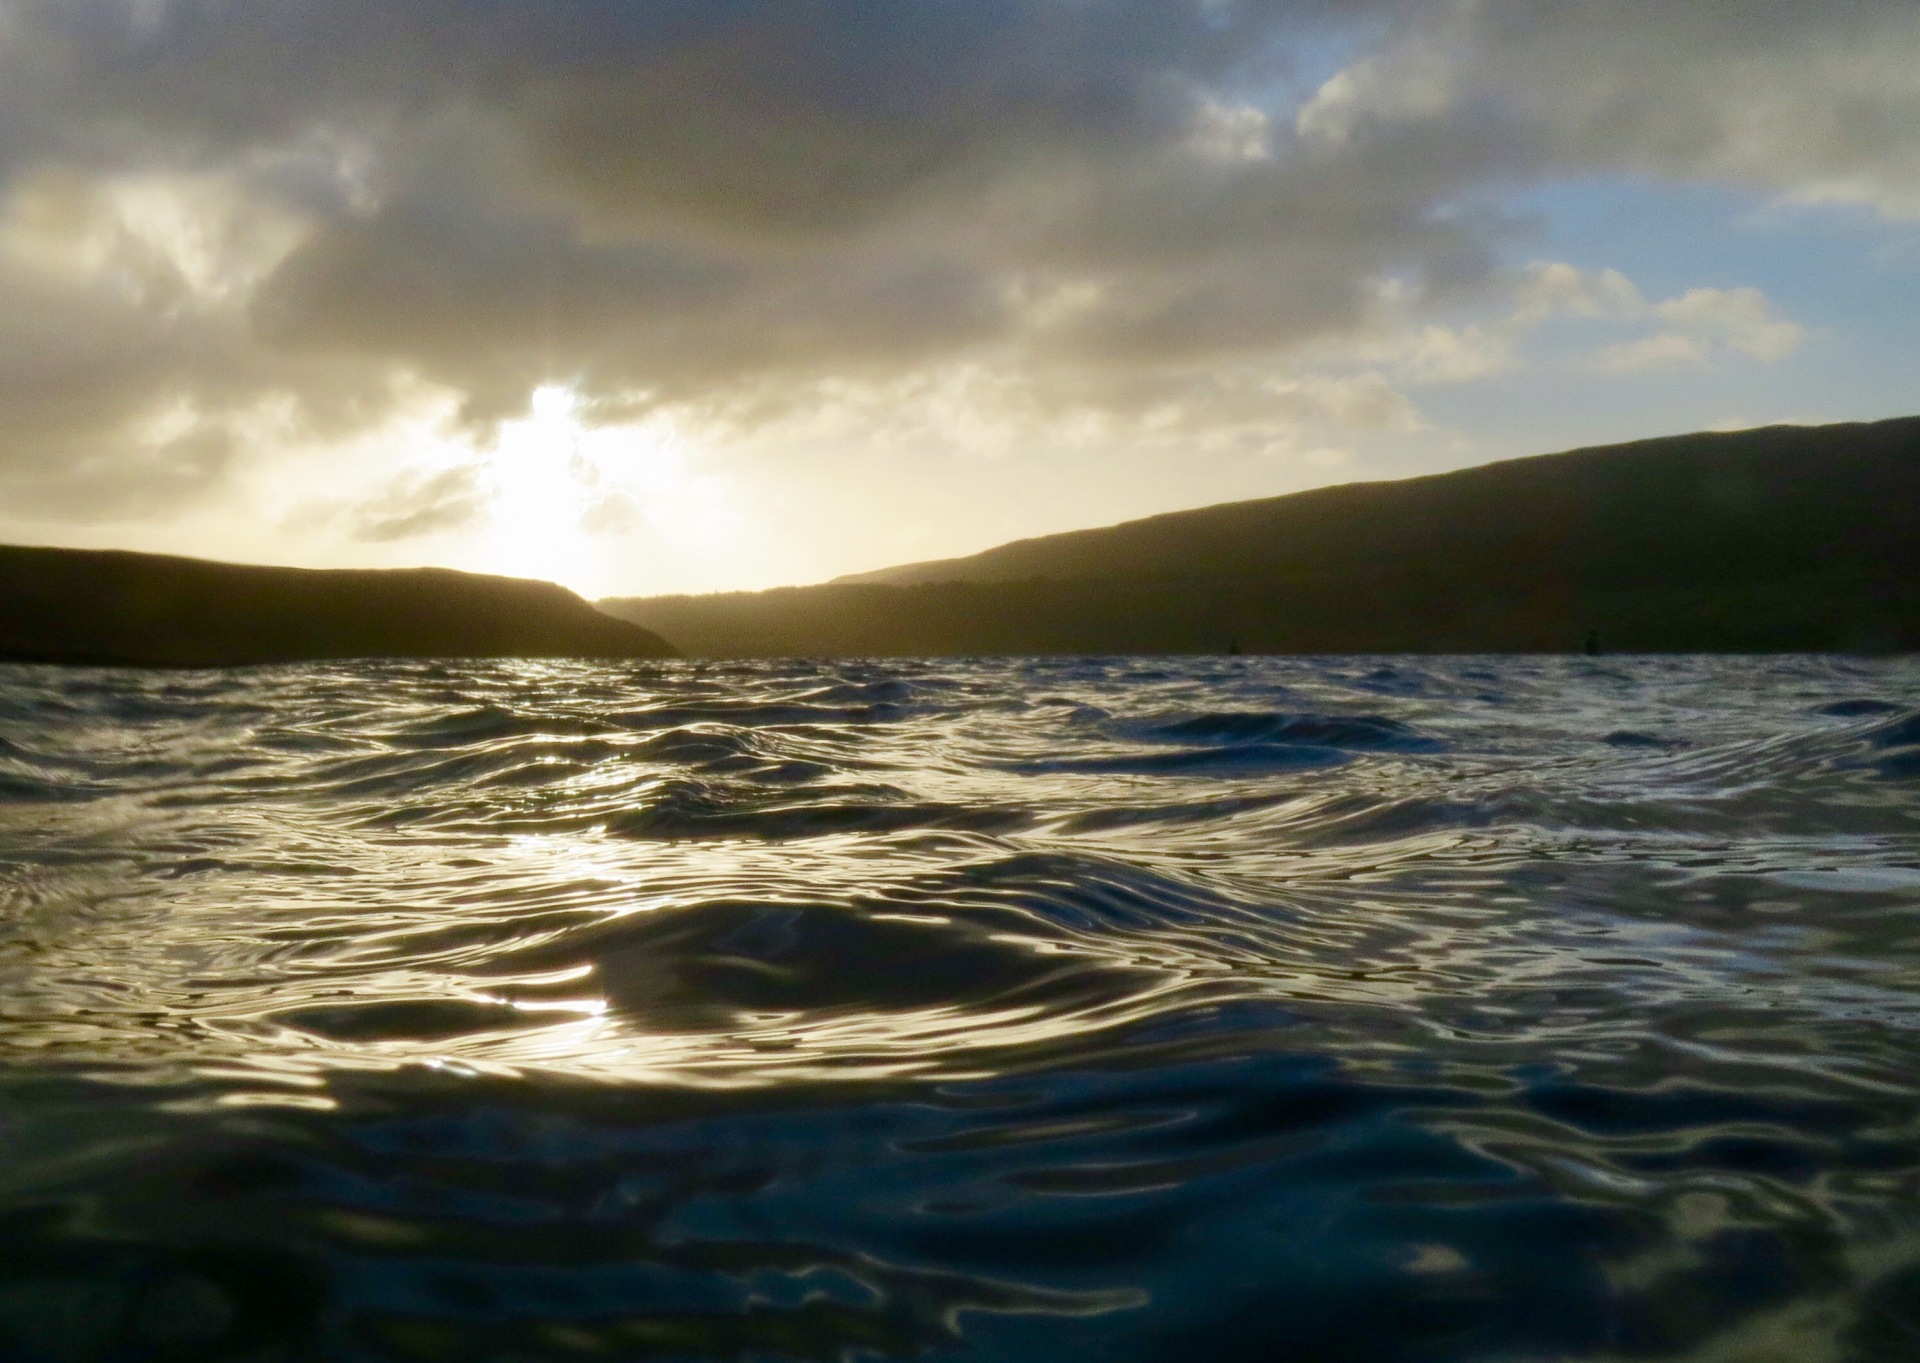 Sunlight on the water from the jetty